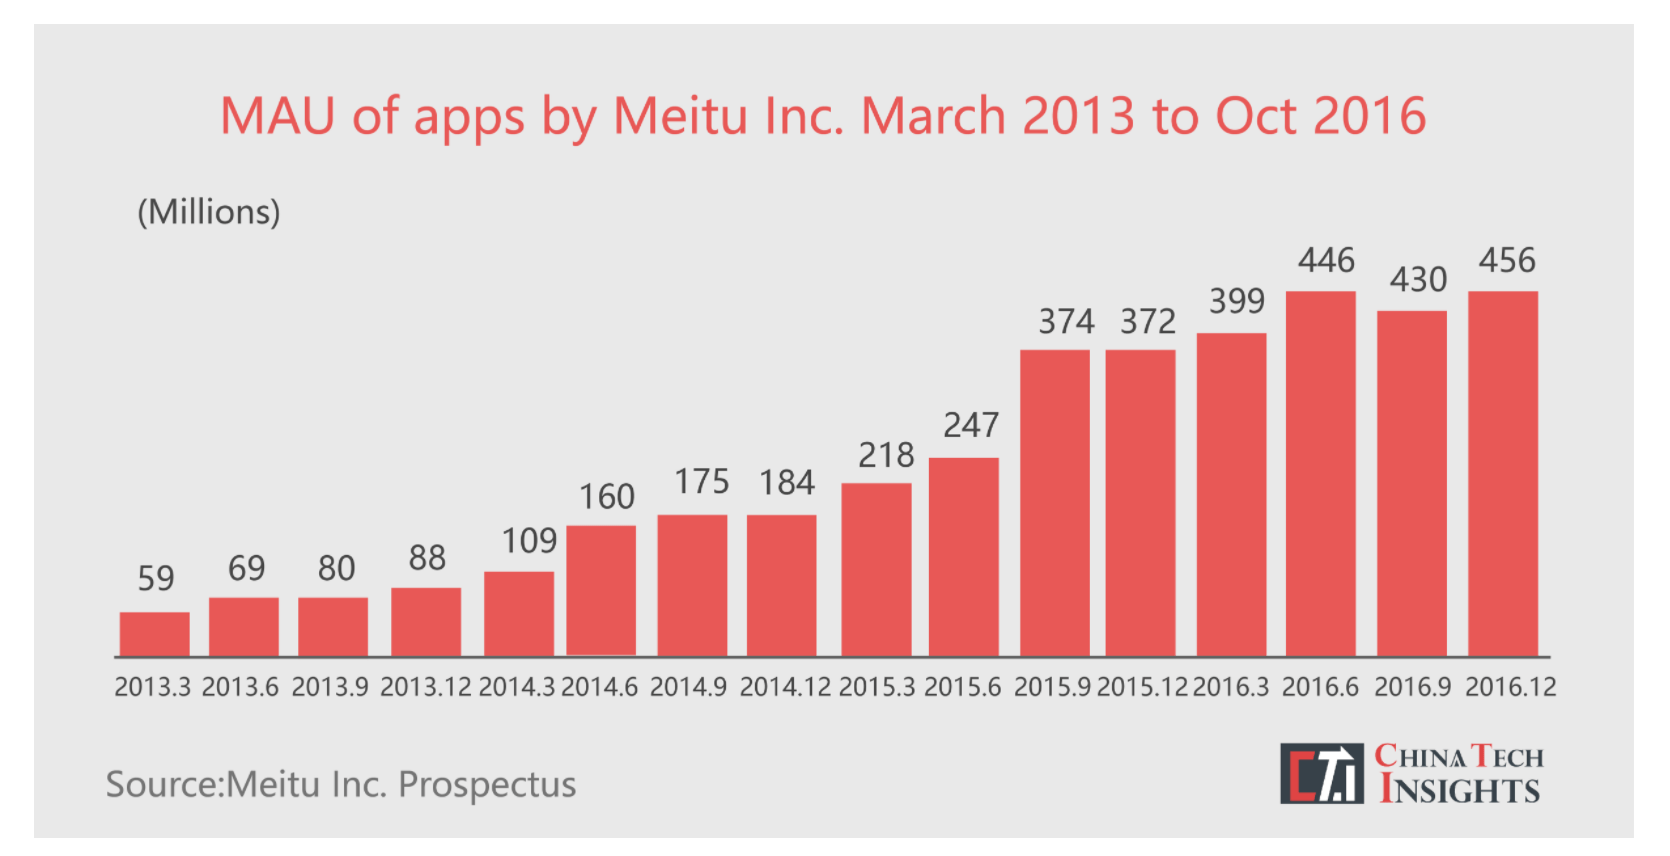 Meitu's monthly active users from 2013 to 2016